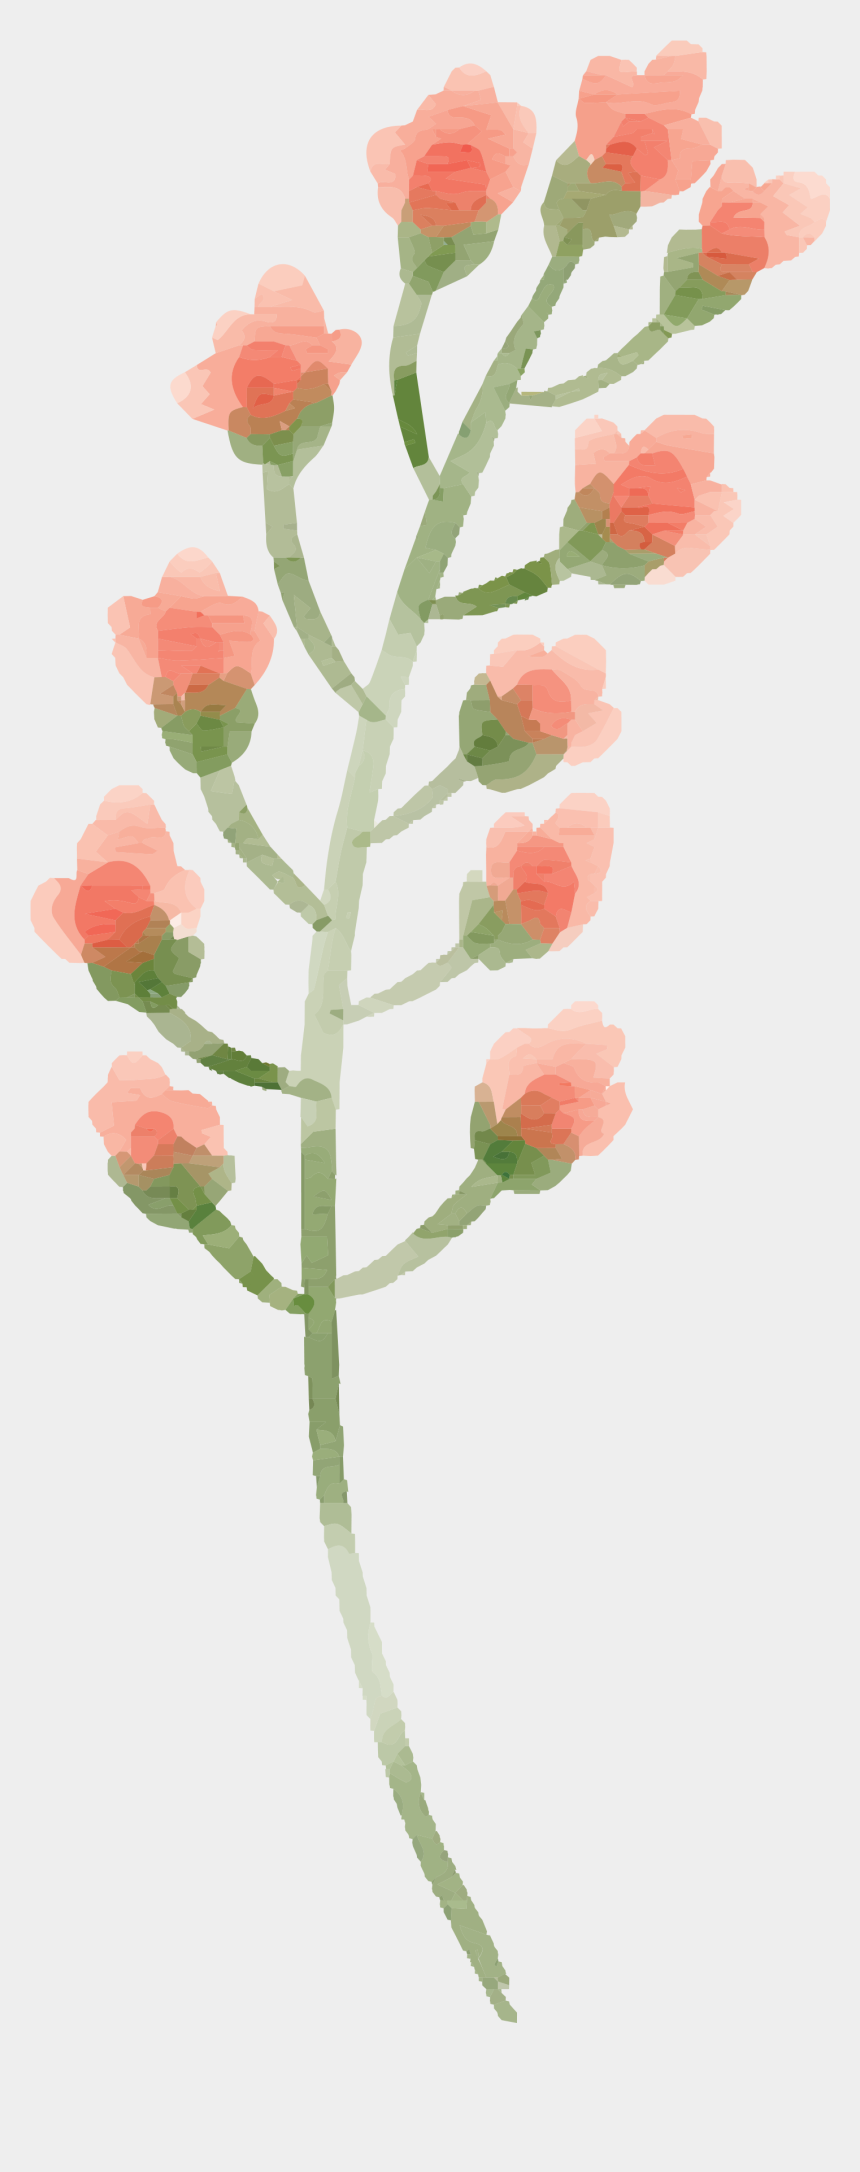 free watercolor flower clipart, Cartoons - Free Watercolor Flower Images Peach Delight - Peach Flower Watercolor Png